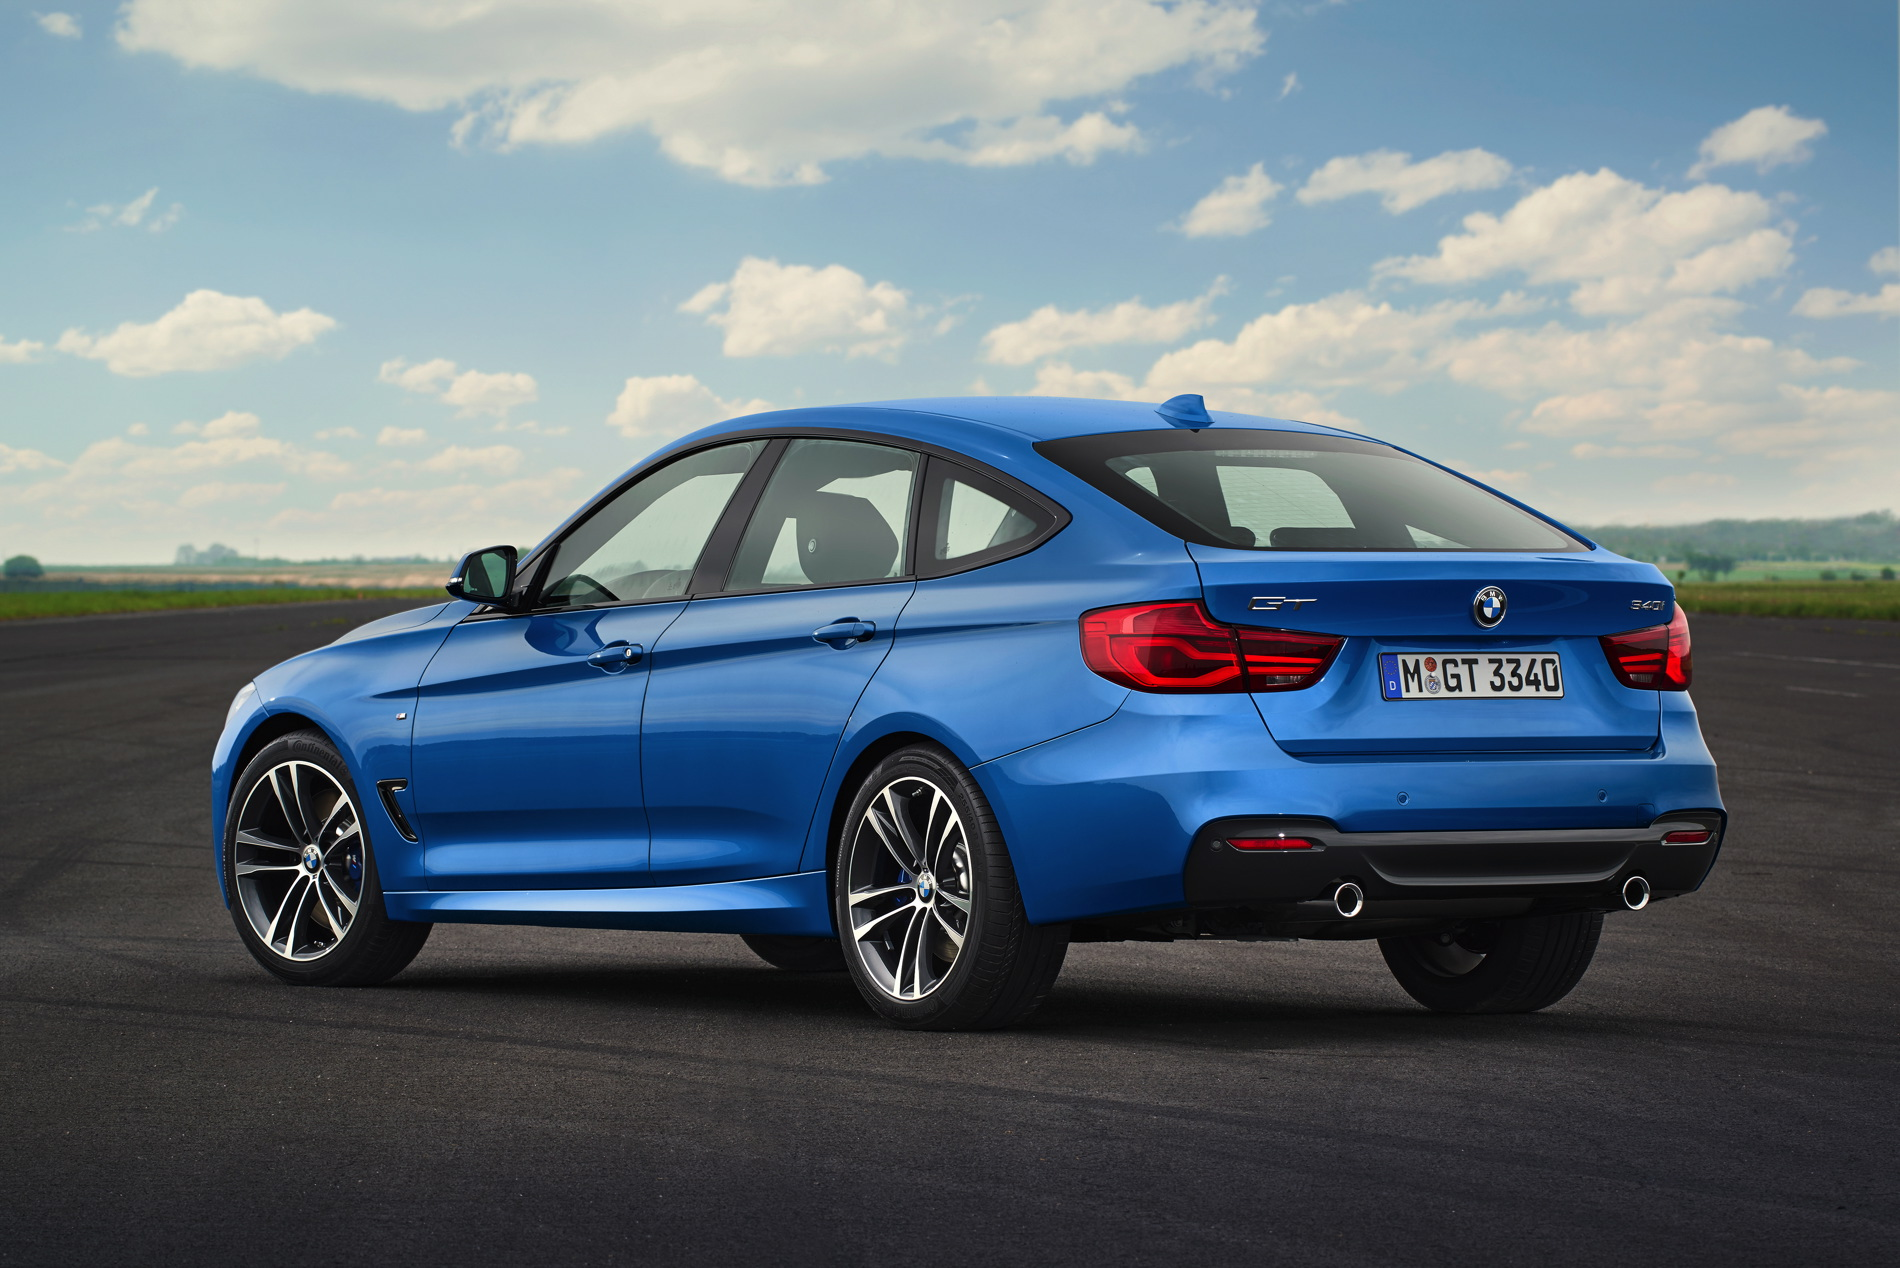 Rumor Bmw 3 Series Gt To Be Phased Out In Next Generation 3 Series